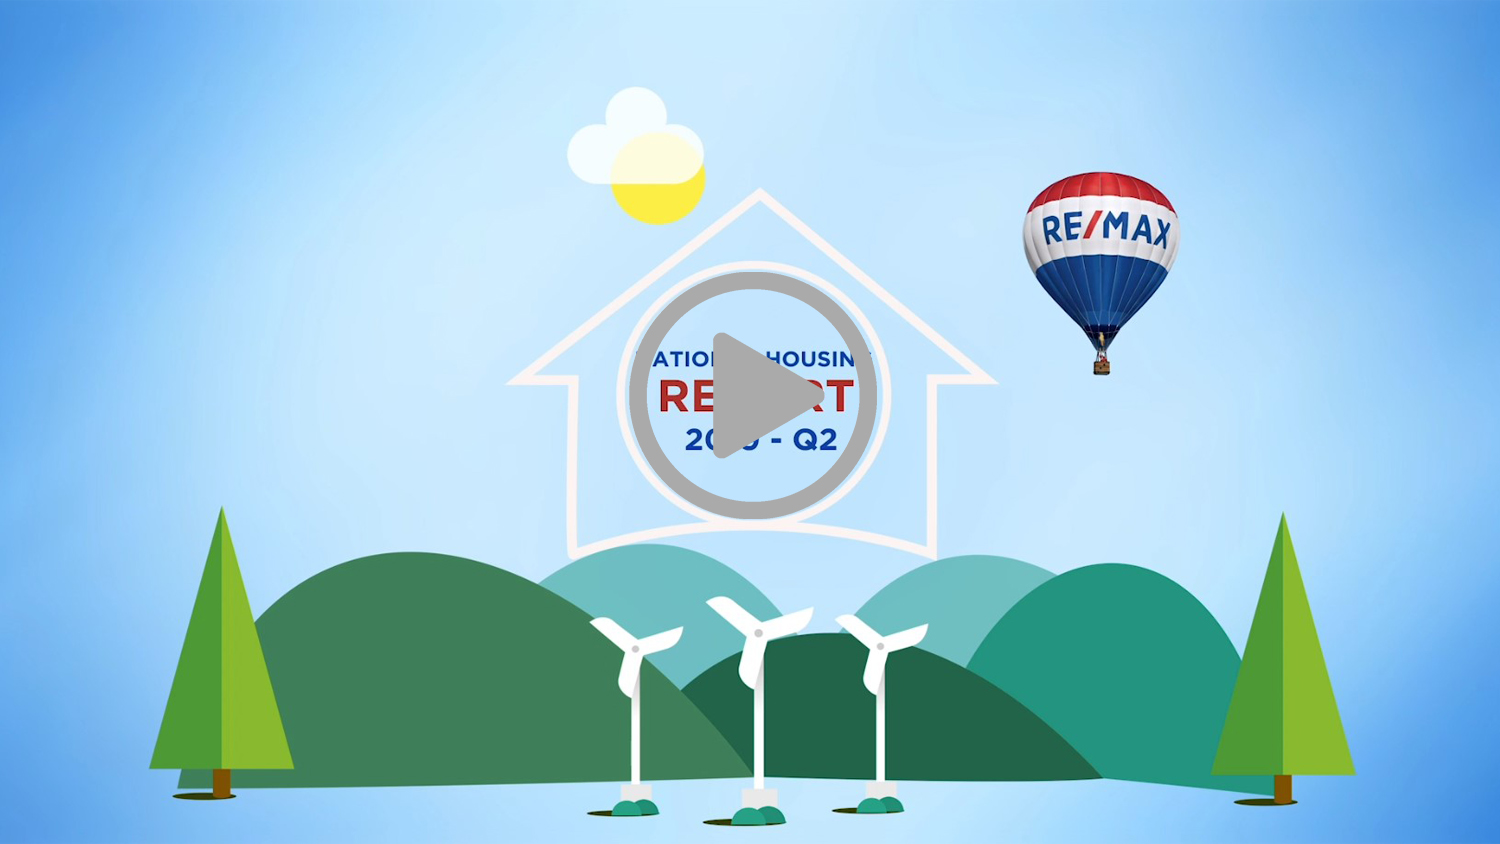 RE/MAX NATIONAL HOUSING REPORT Q2 2019